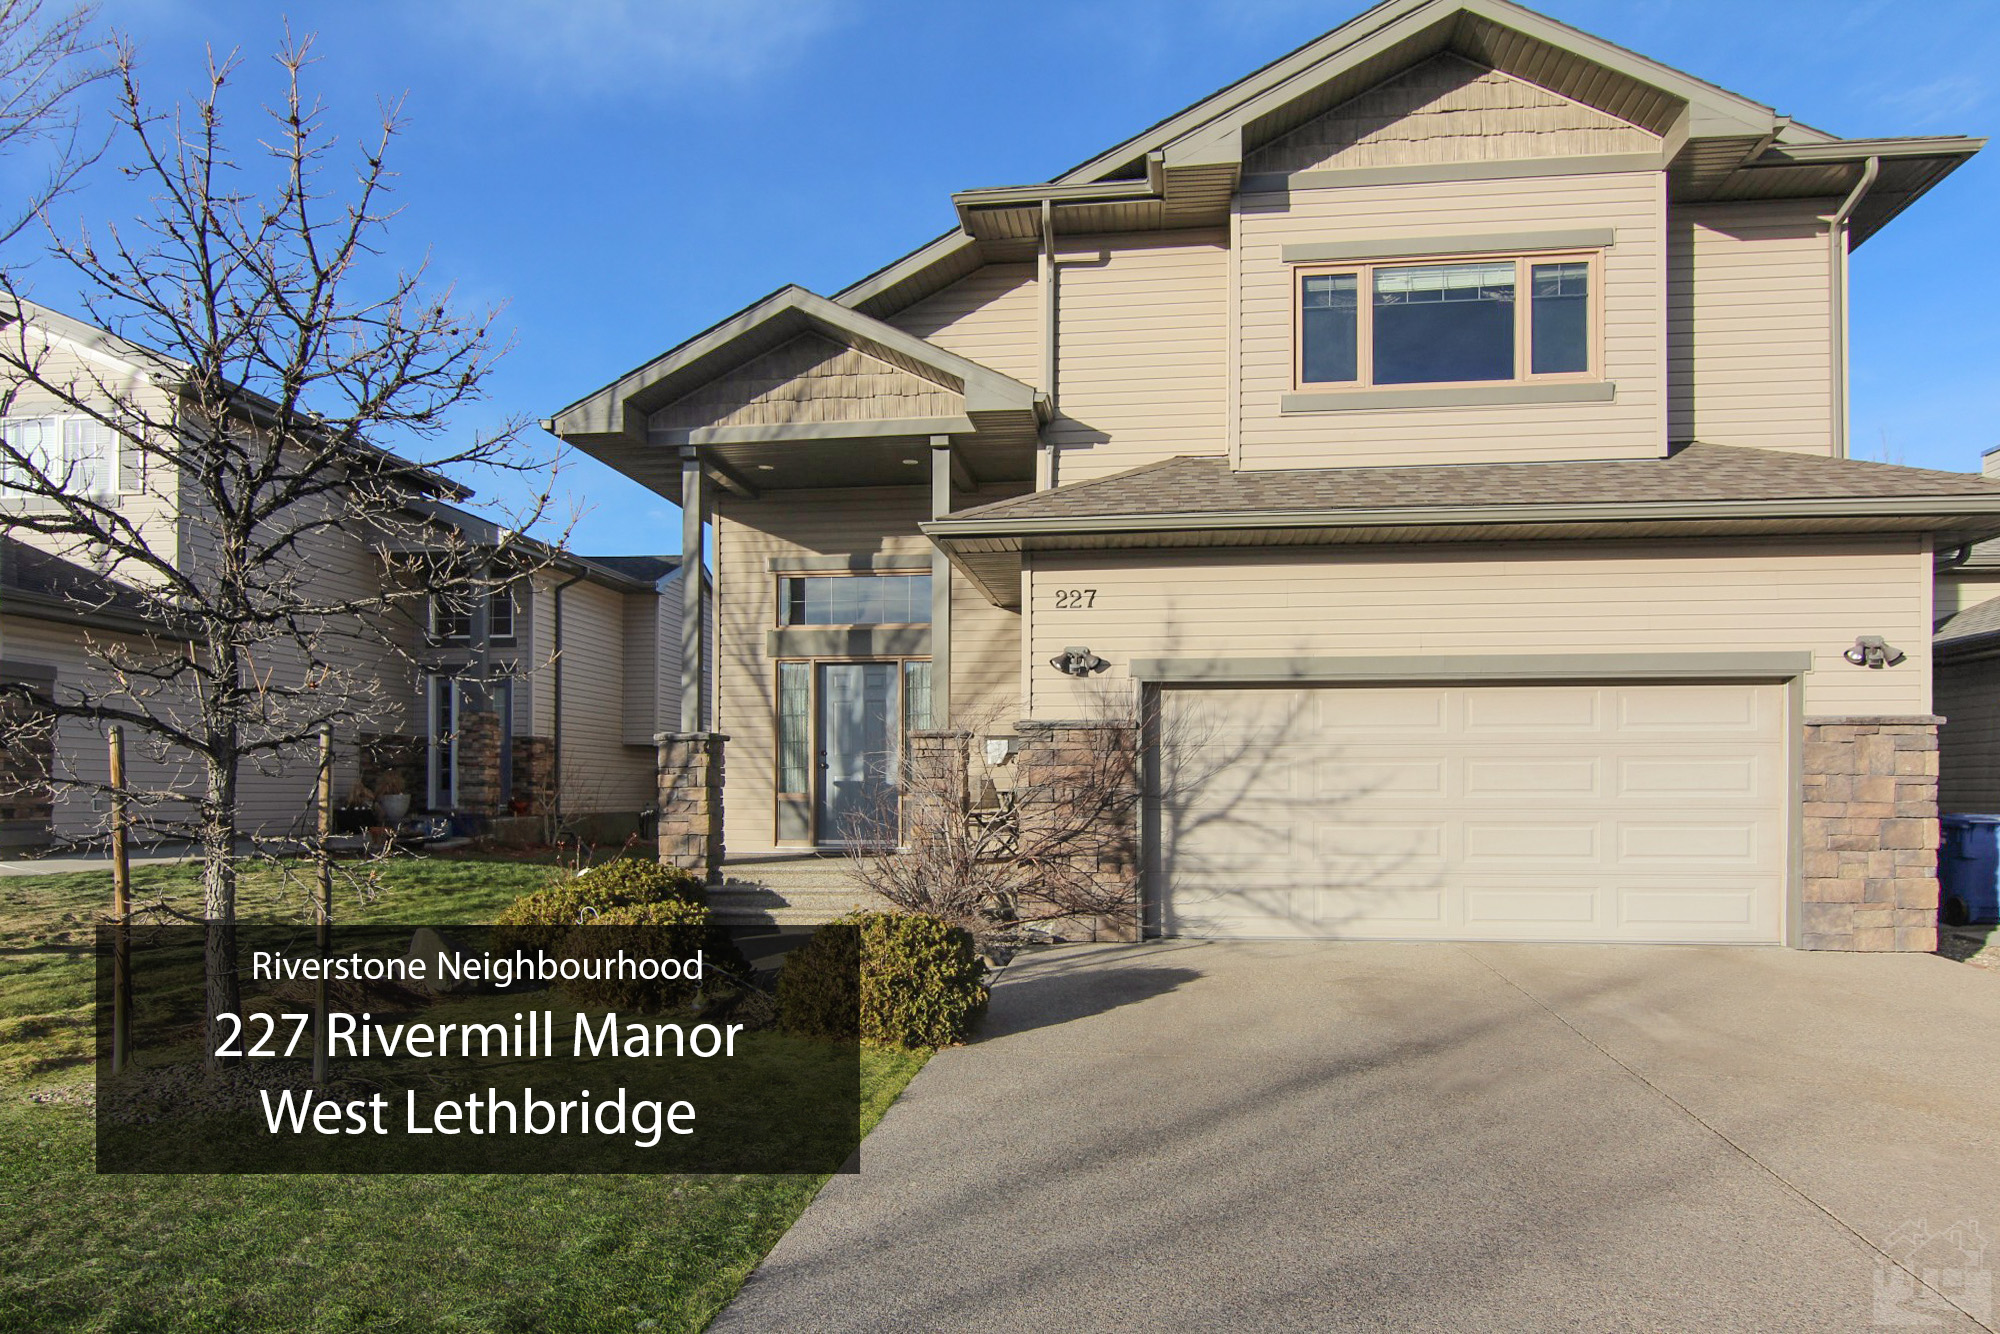 227 Rivermill Manor West Lethbridge Key Image